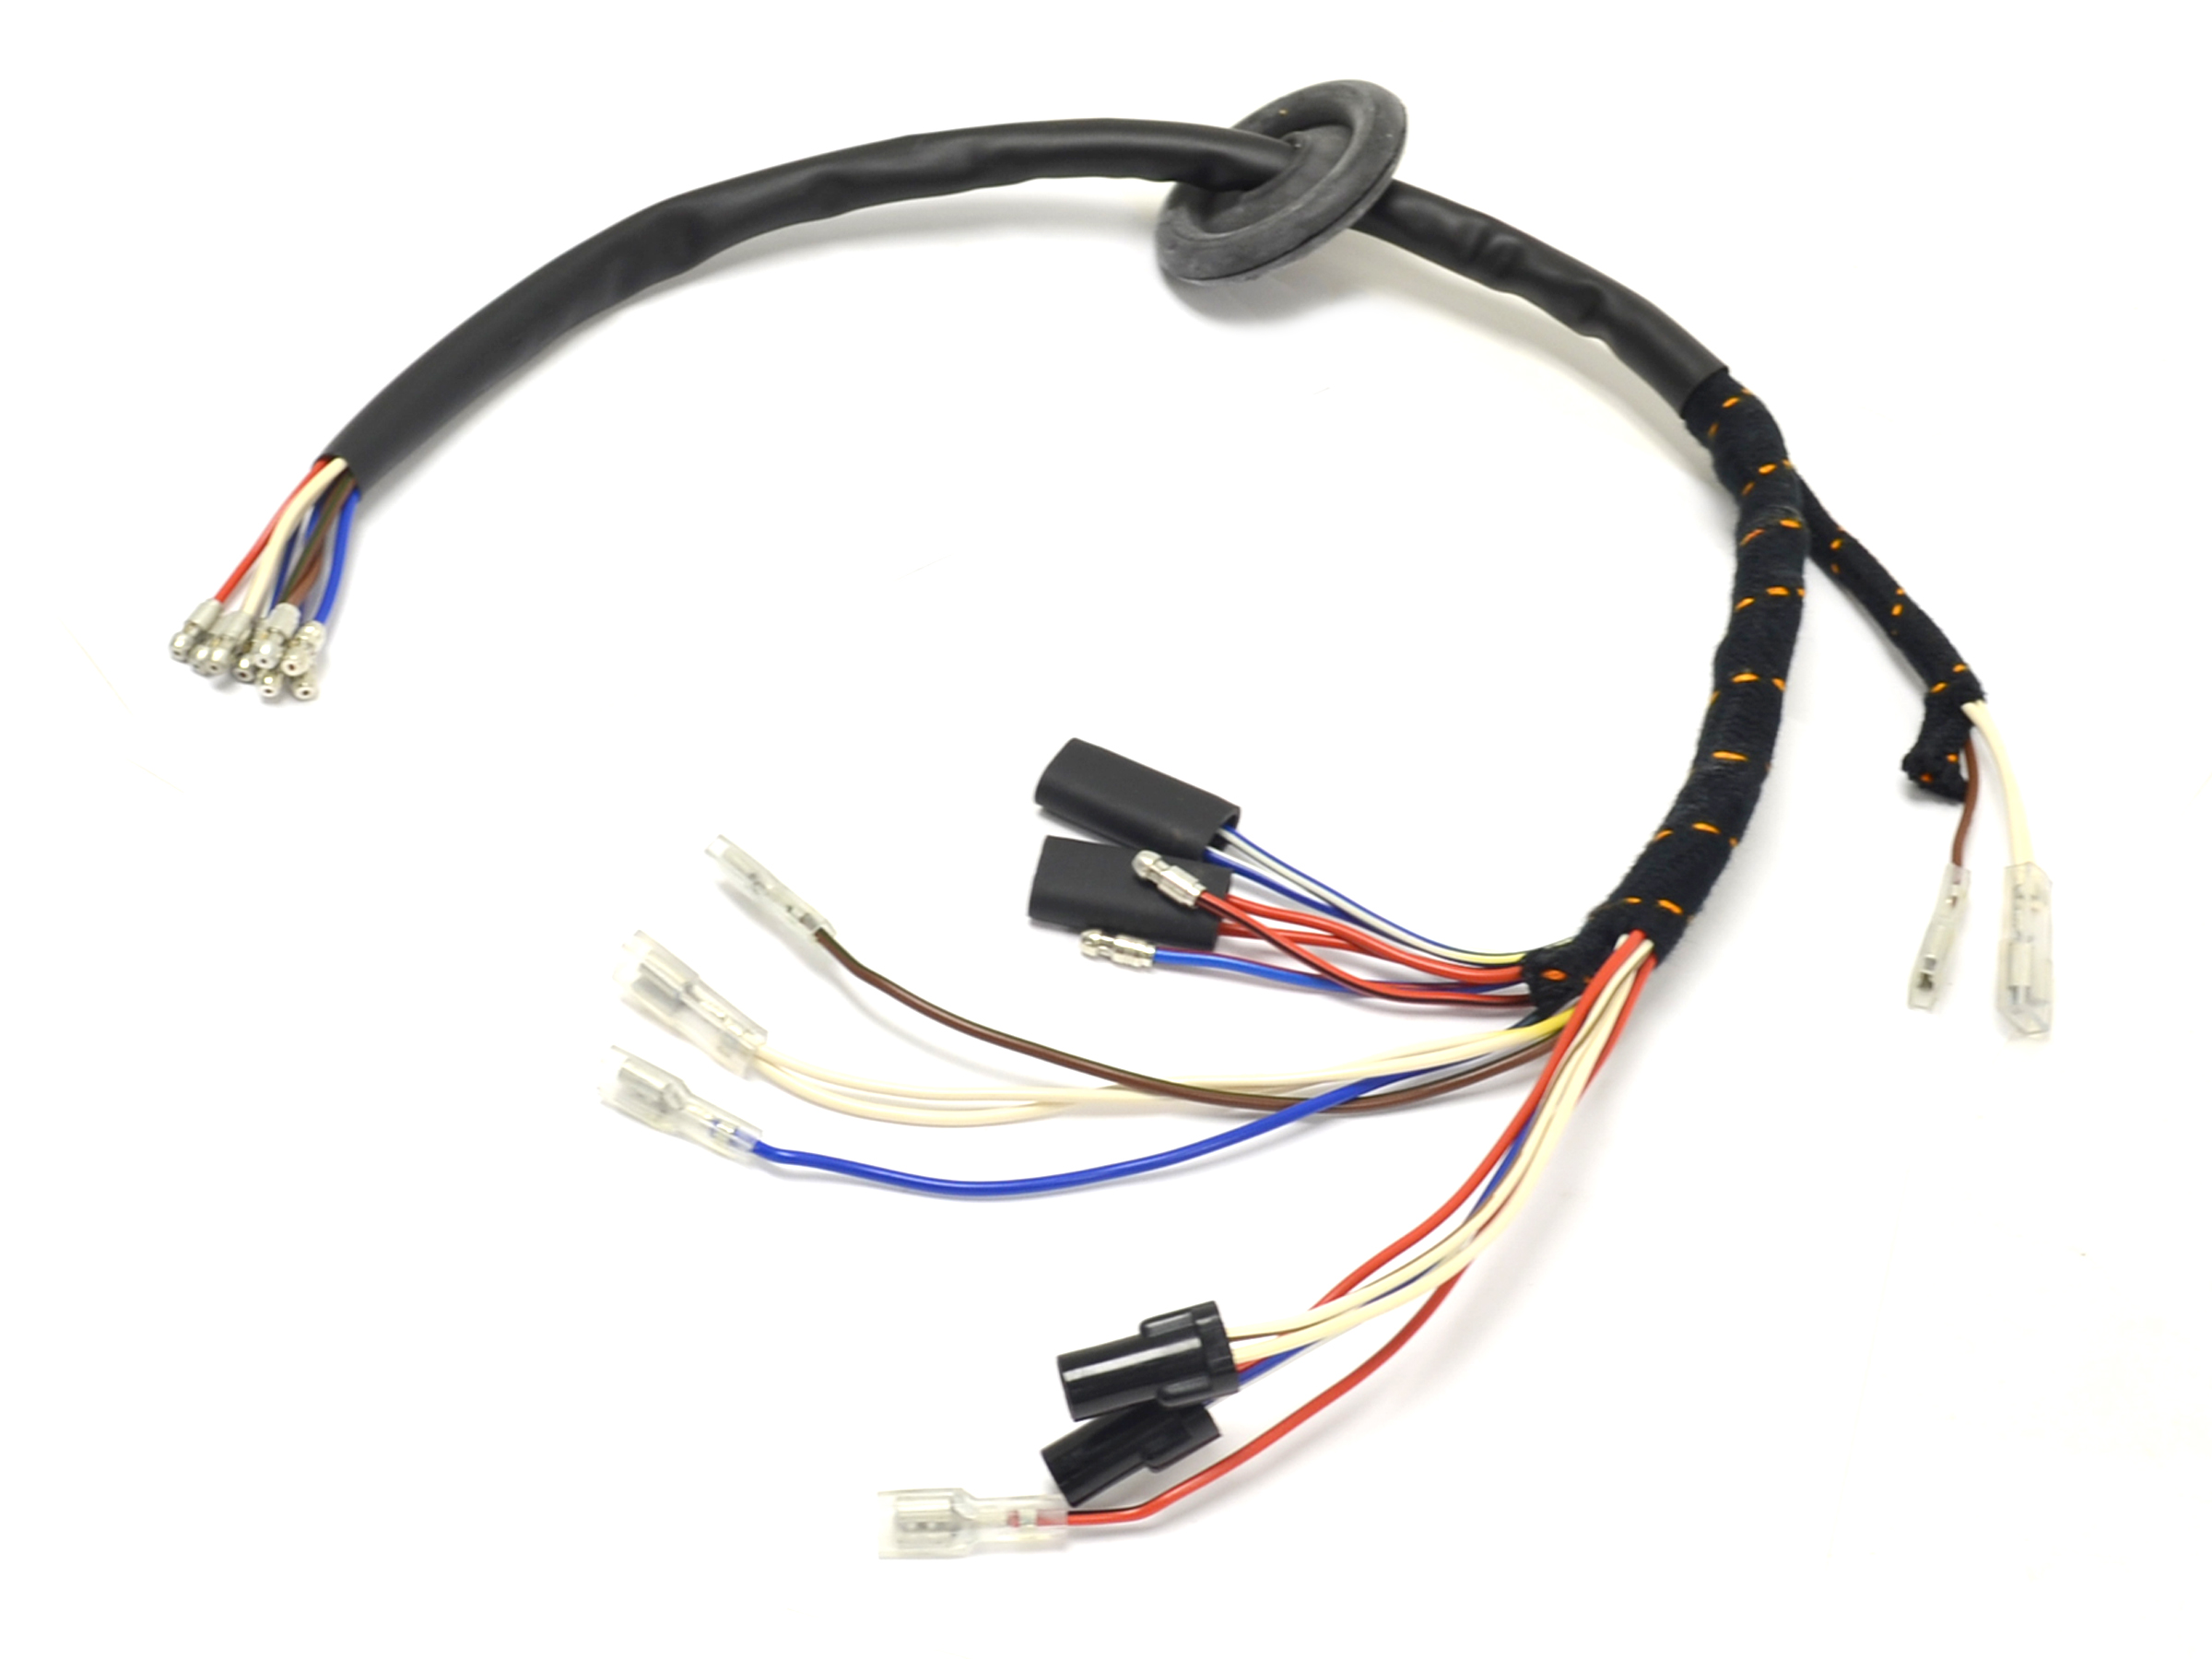 Jeep Hurricane Wiring Harness : Hurricane wiring harness diagram images